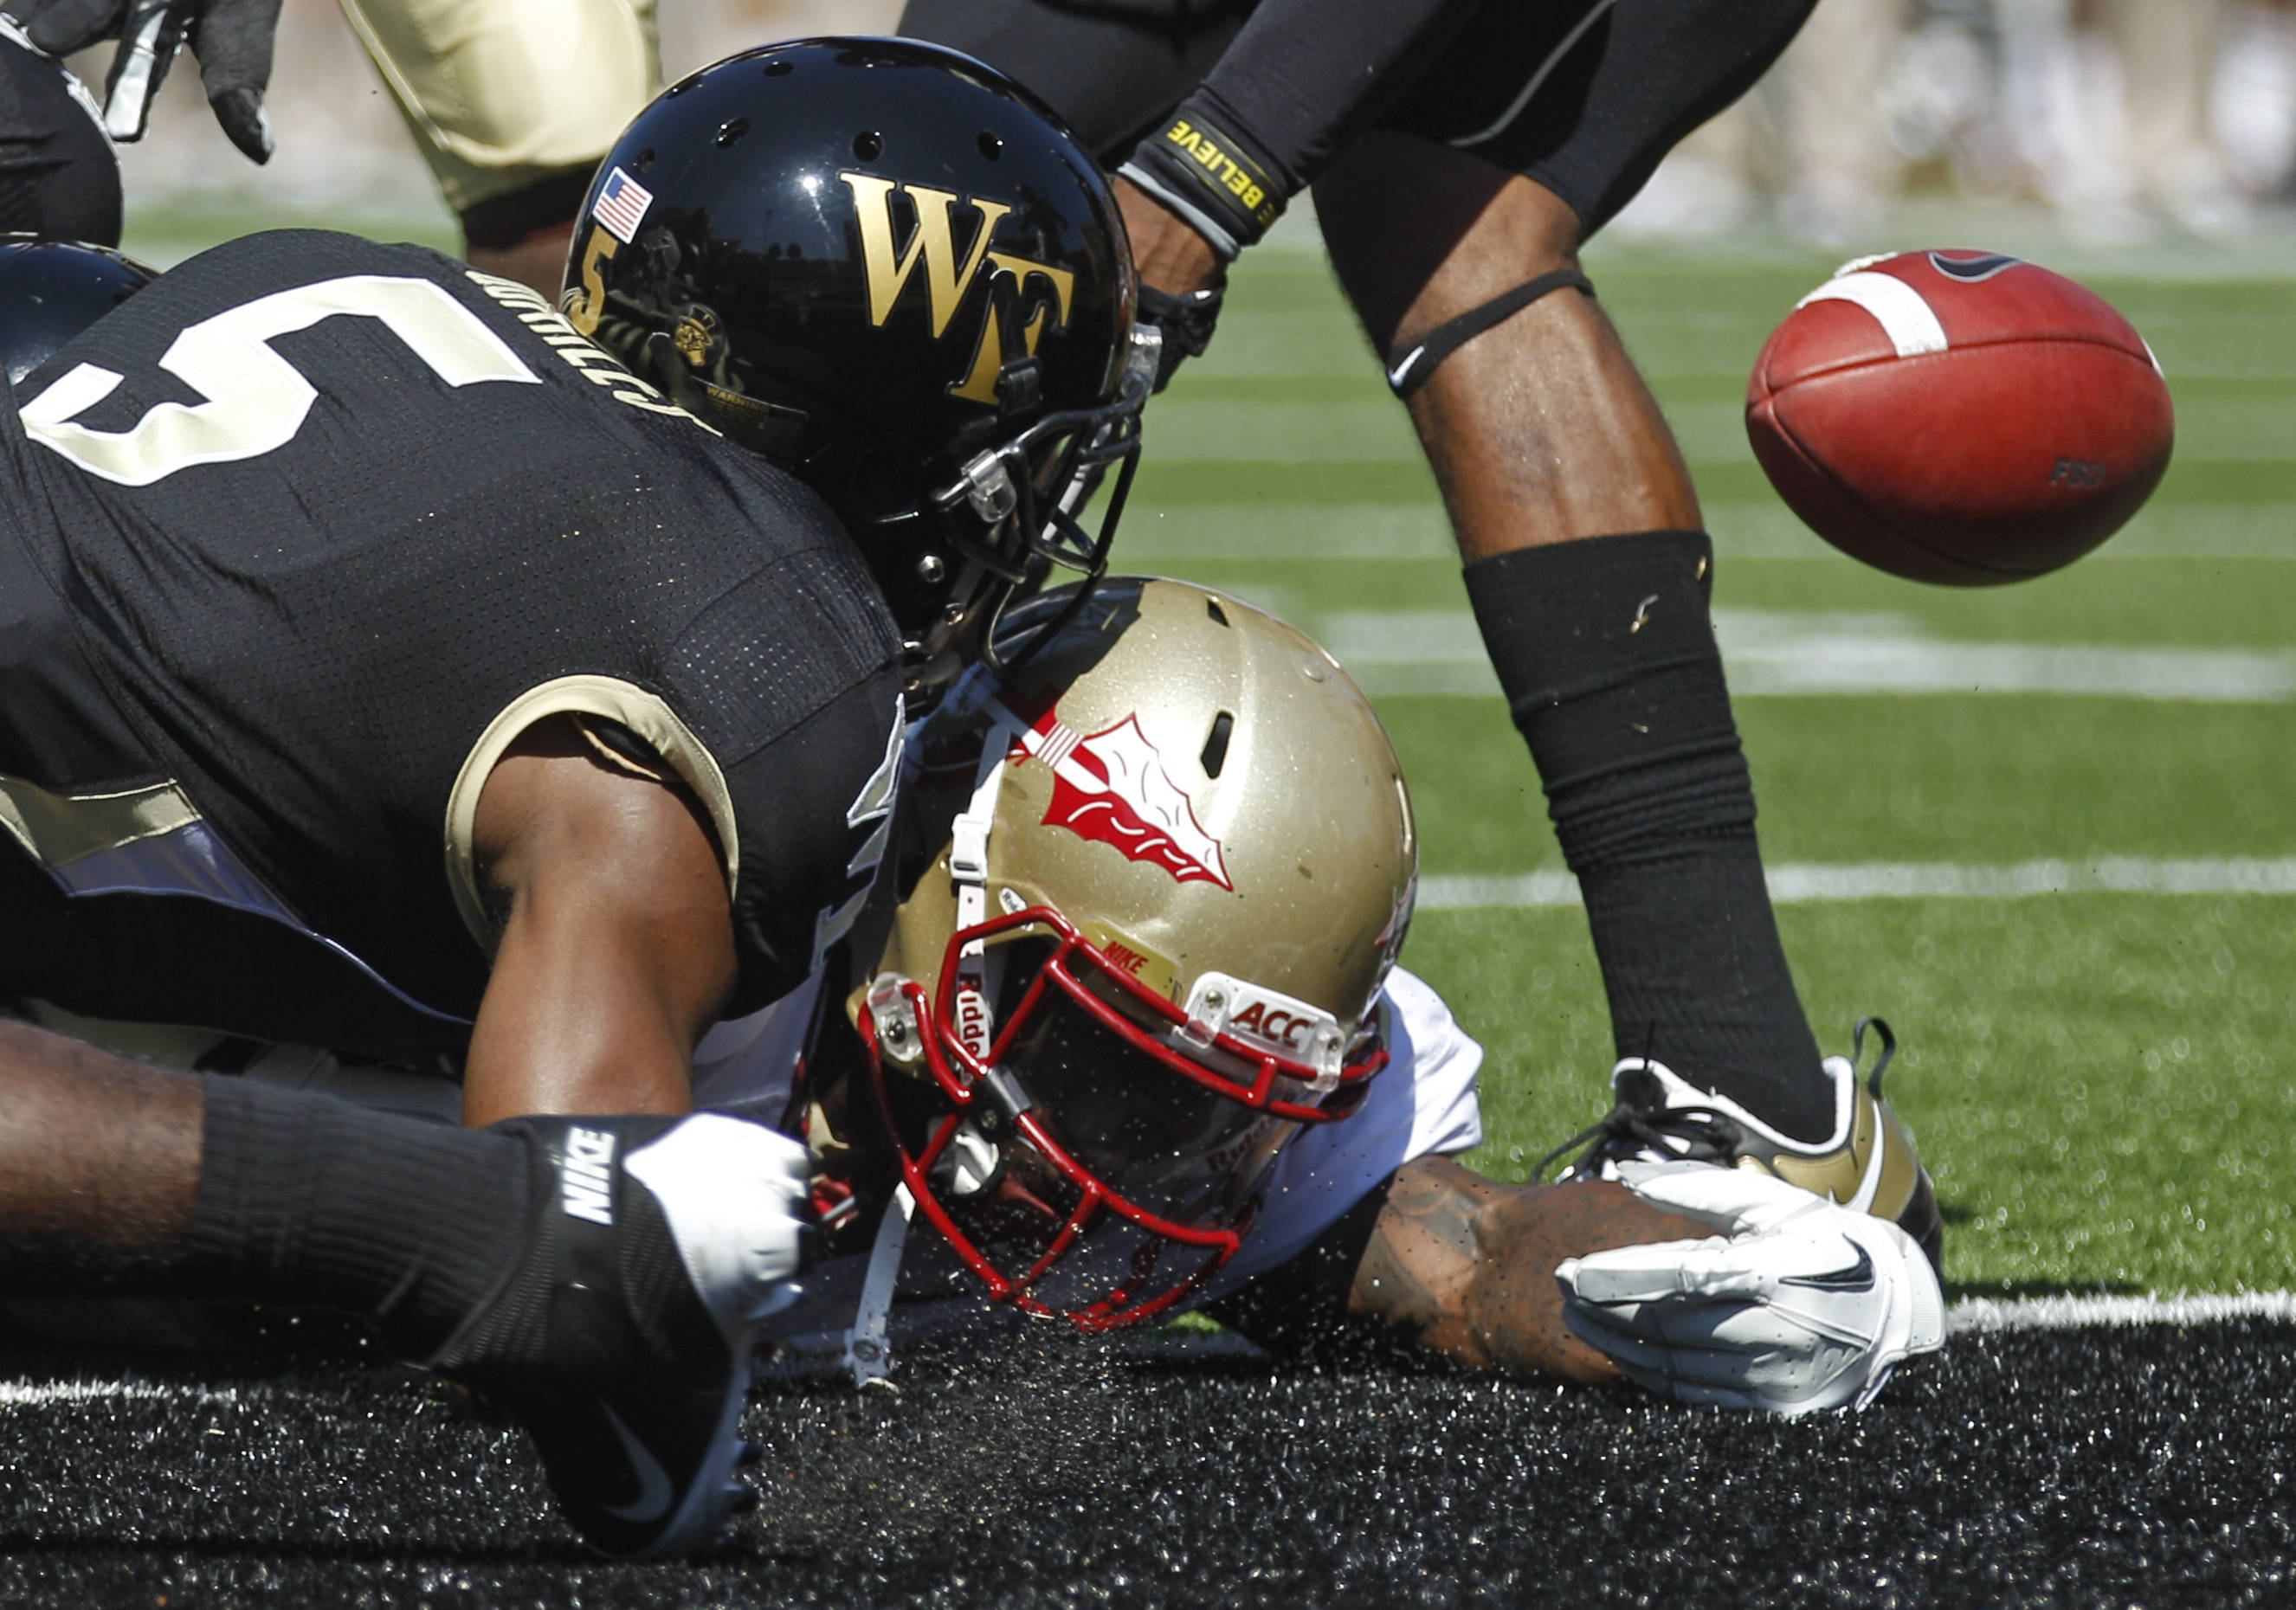 Florida State's James Wilder Jr., right, loses the ball after crossing the goal line for a touchdown as Wake Forest's Cyhl Quarles, left, defends during the first quarter of a NCAA college football game in Winston-Salem, N.C., Saturday, Oct. 8, 2011. (AP Photo/Chuck Burton)